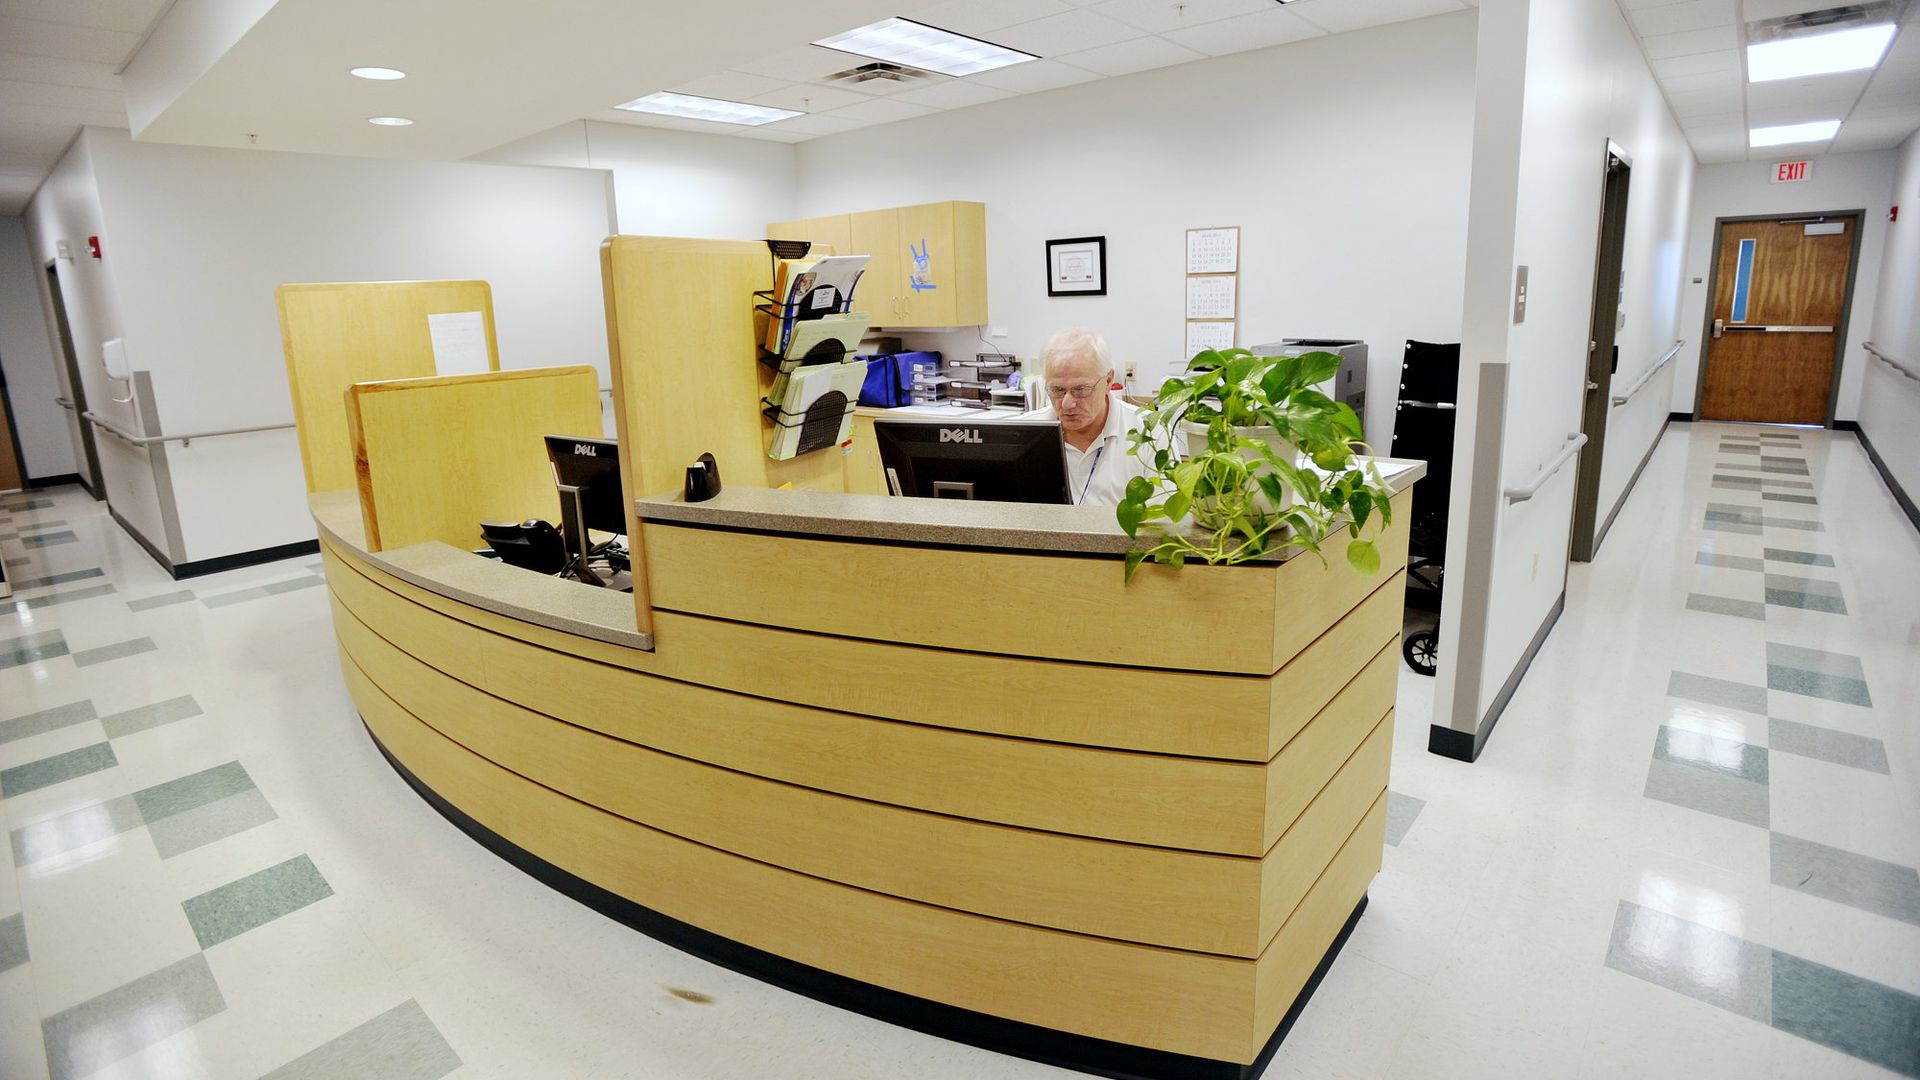 The Veterans Administration opened its first primary care and mental health clinic in Portland in 2011.